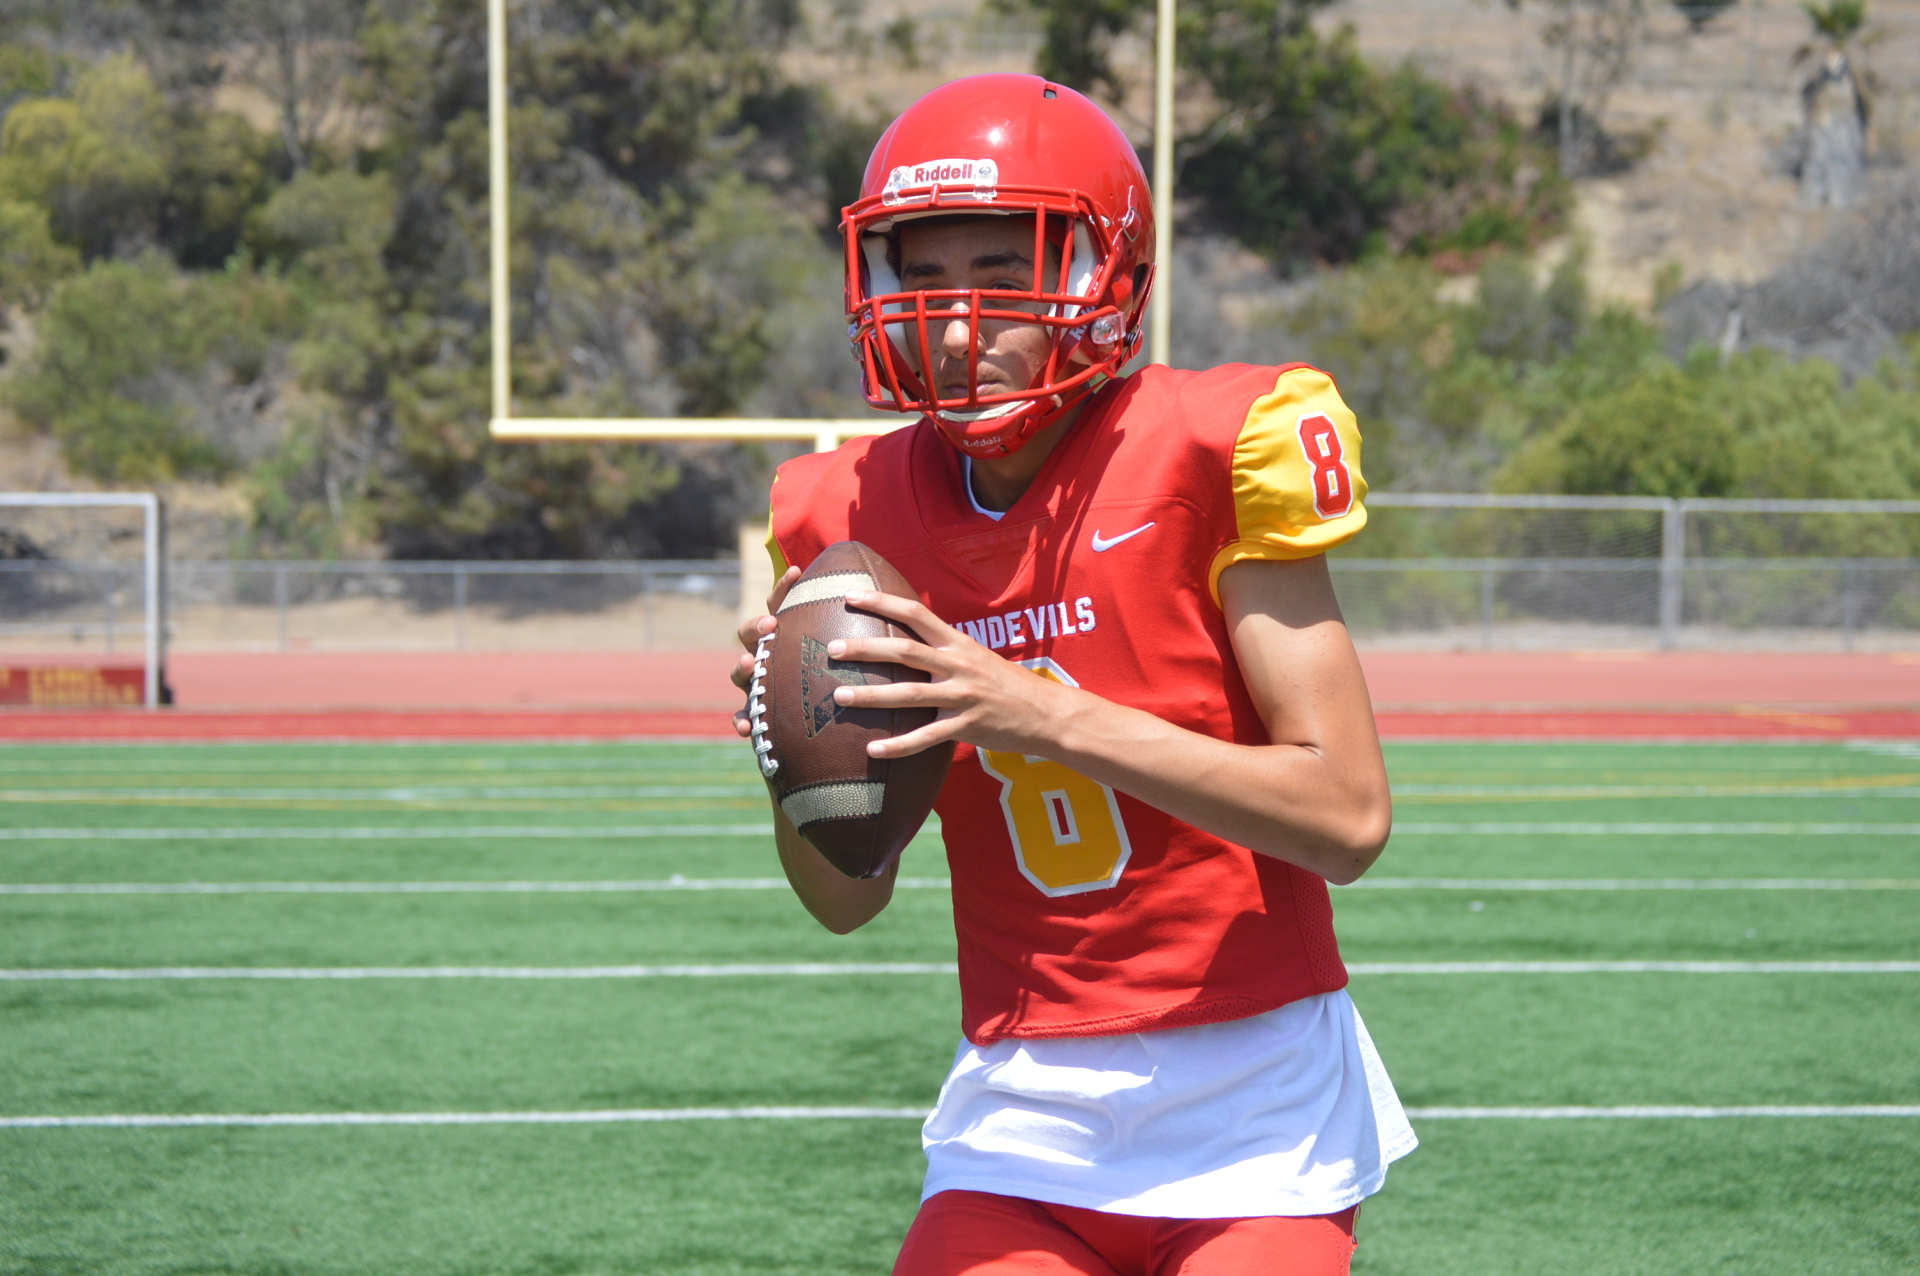 Mt Carmel High School - QB Carson Taumoepeau